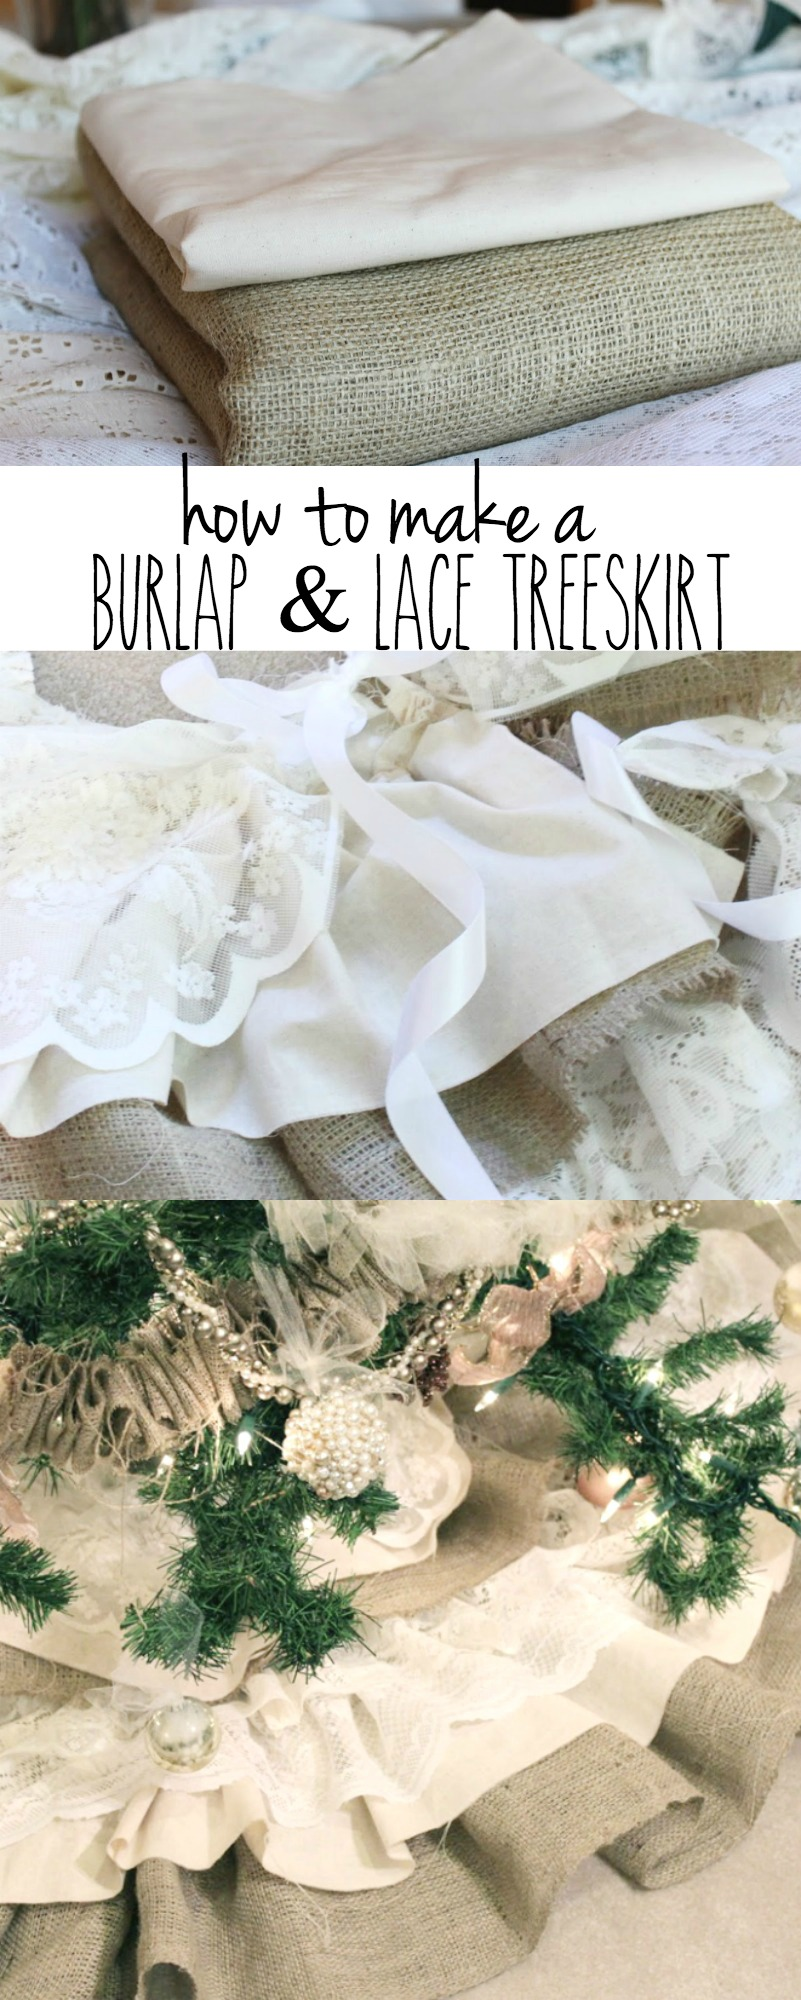 How to Make a Burlap and Lace Treeskirt